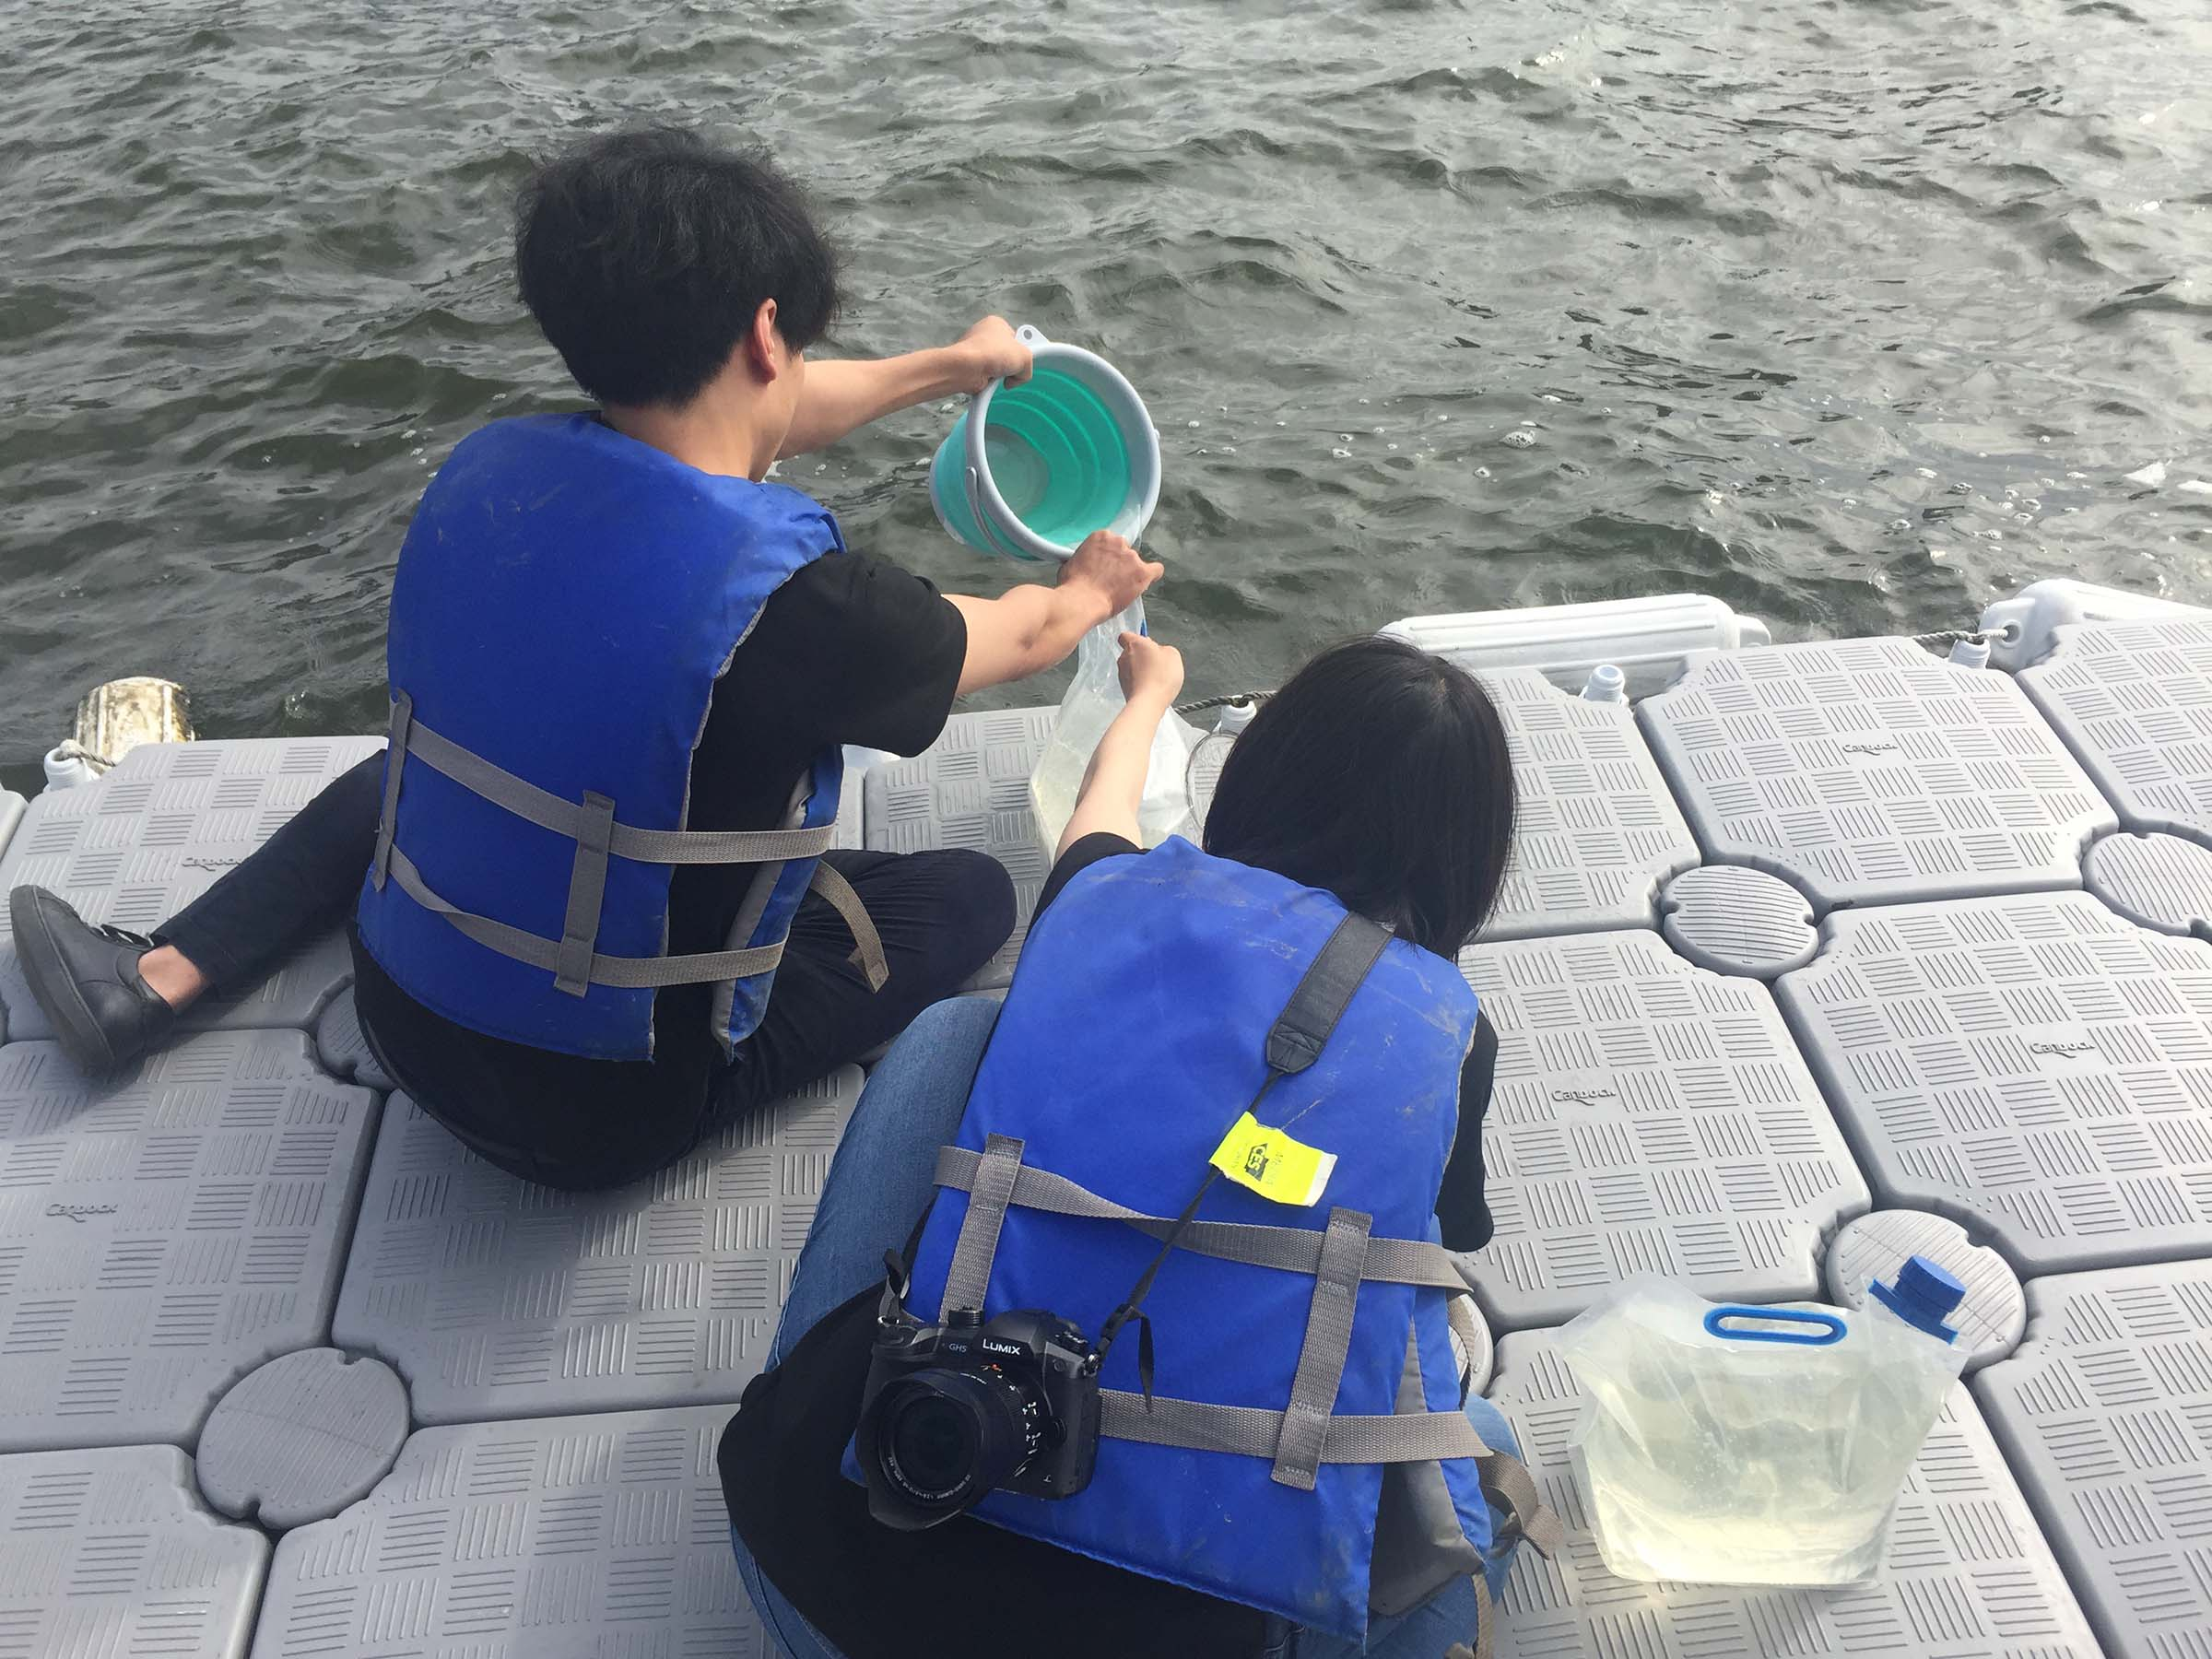 Students collecting water to use in their experiments from the Hudson River